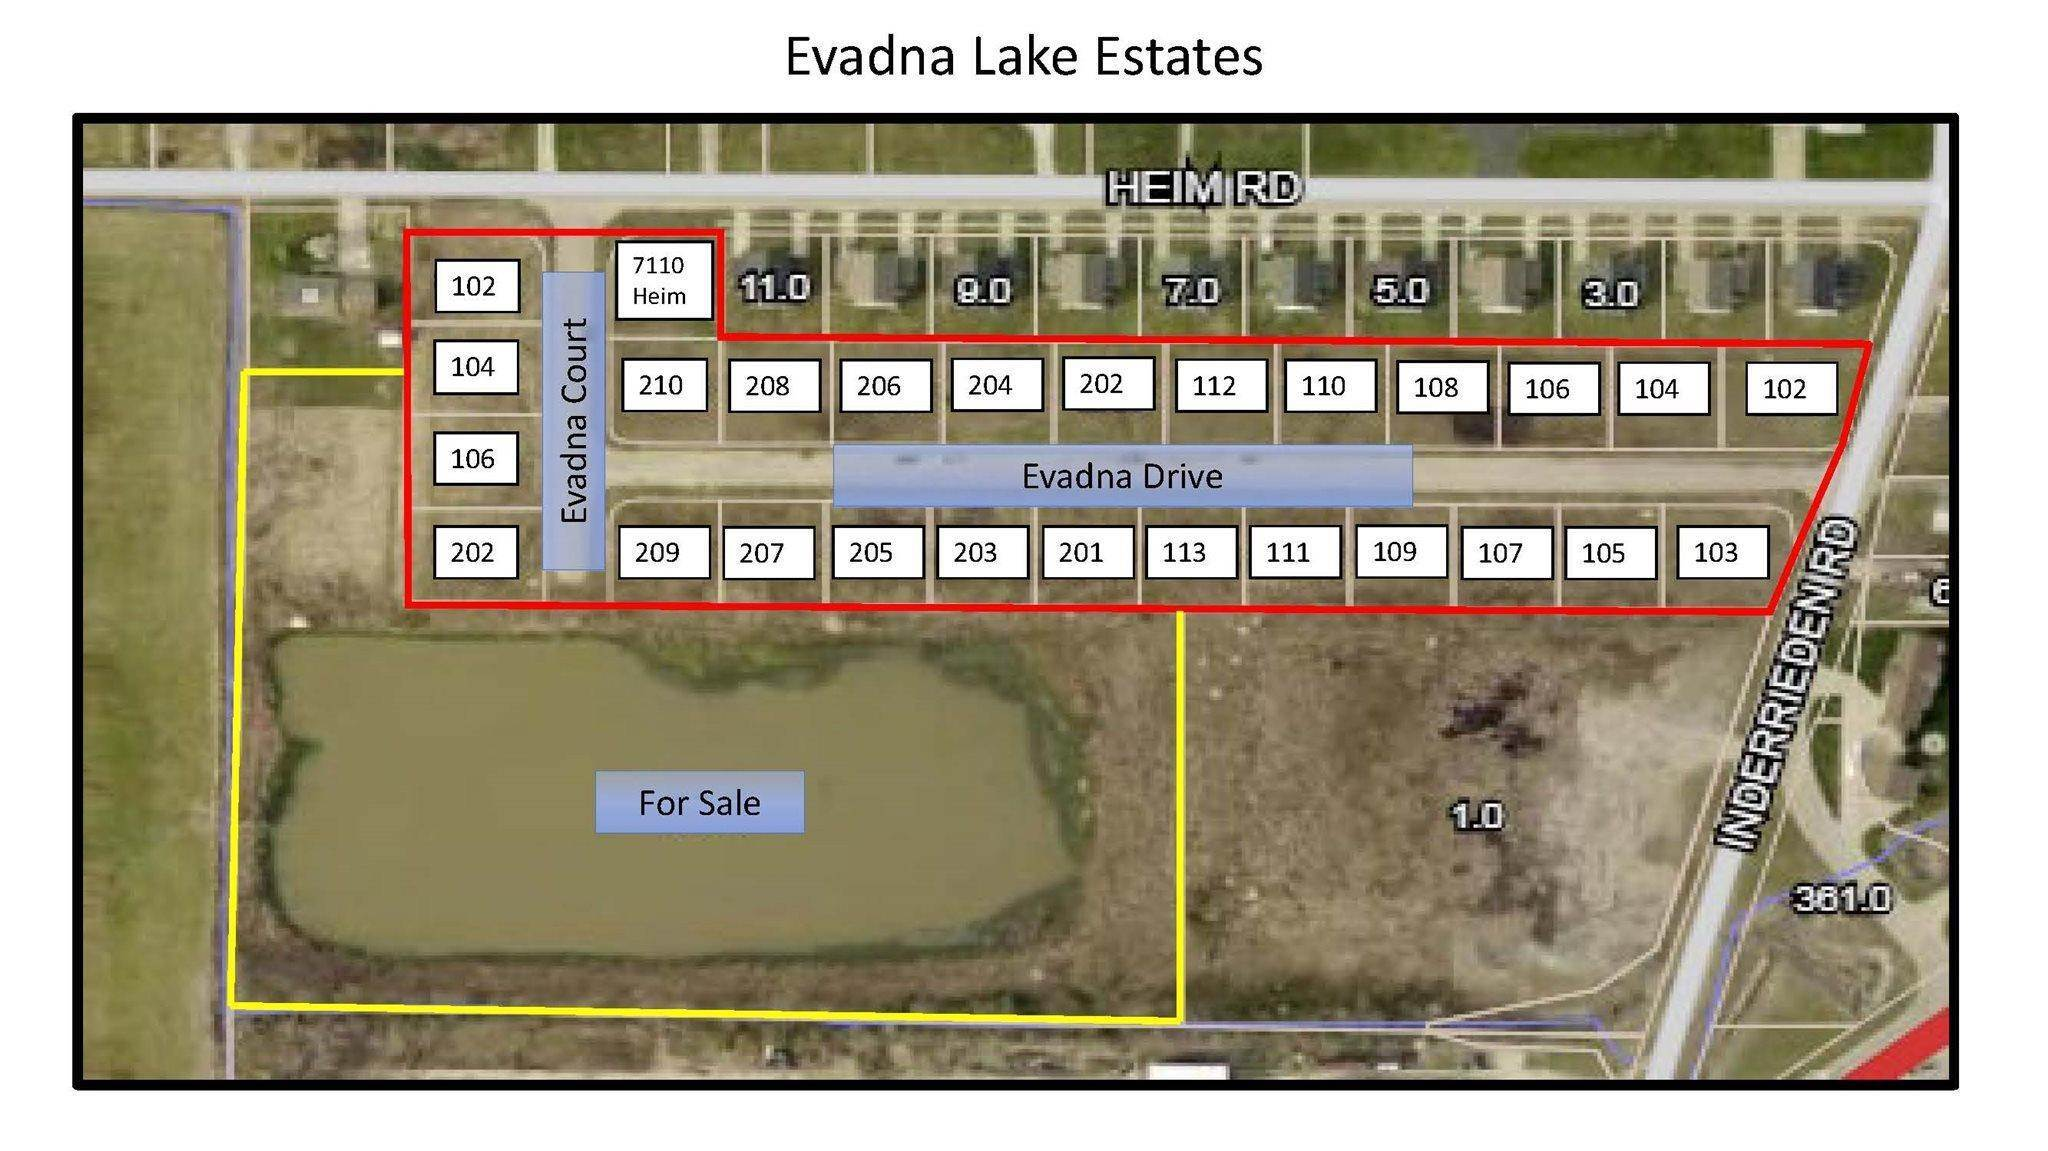 Residential Lots & Land for Sale at 202 Evadna Court Boonville, Indiana 47610 United States